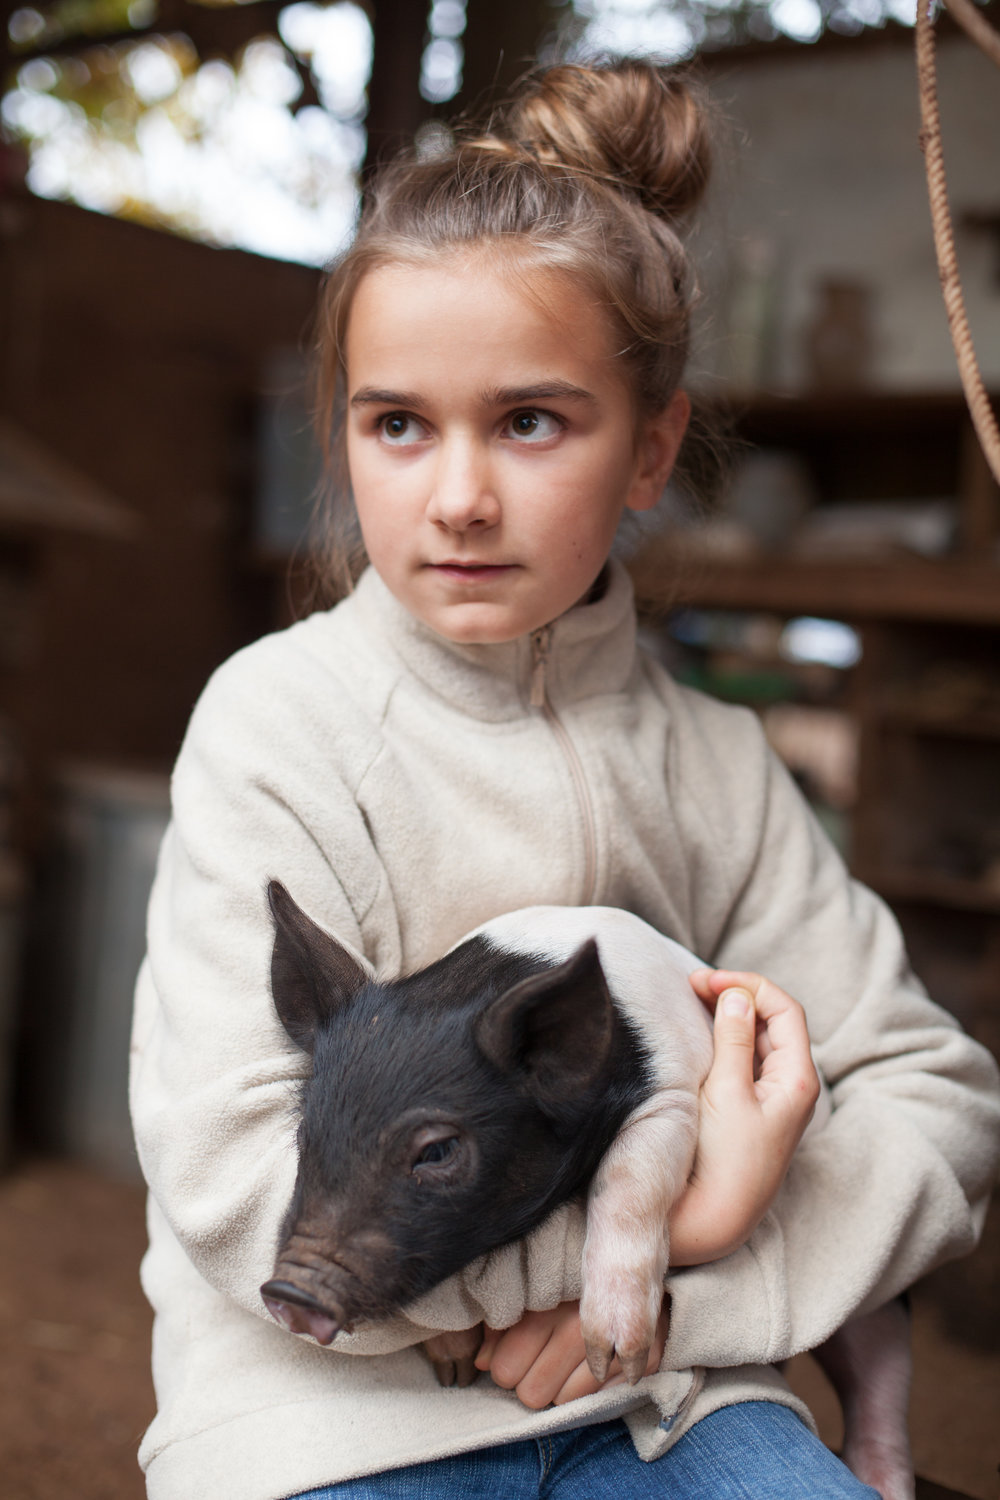 dundee_pigs_feature_worden_hilll_farm_talia_filipek-38 (3).jpg